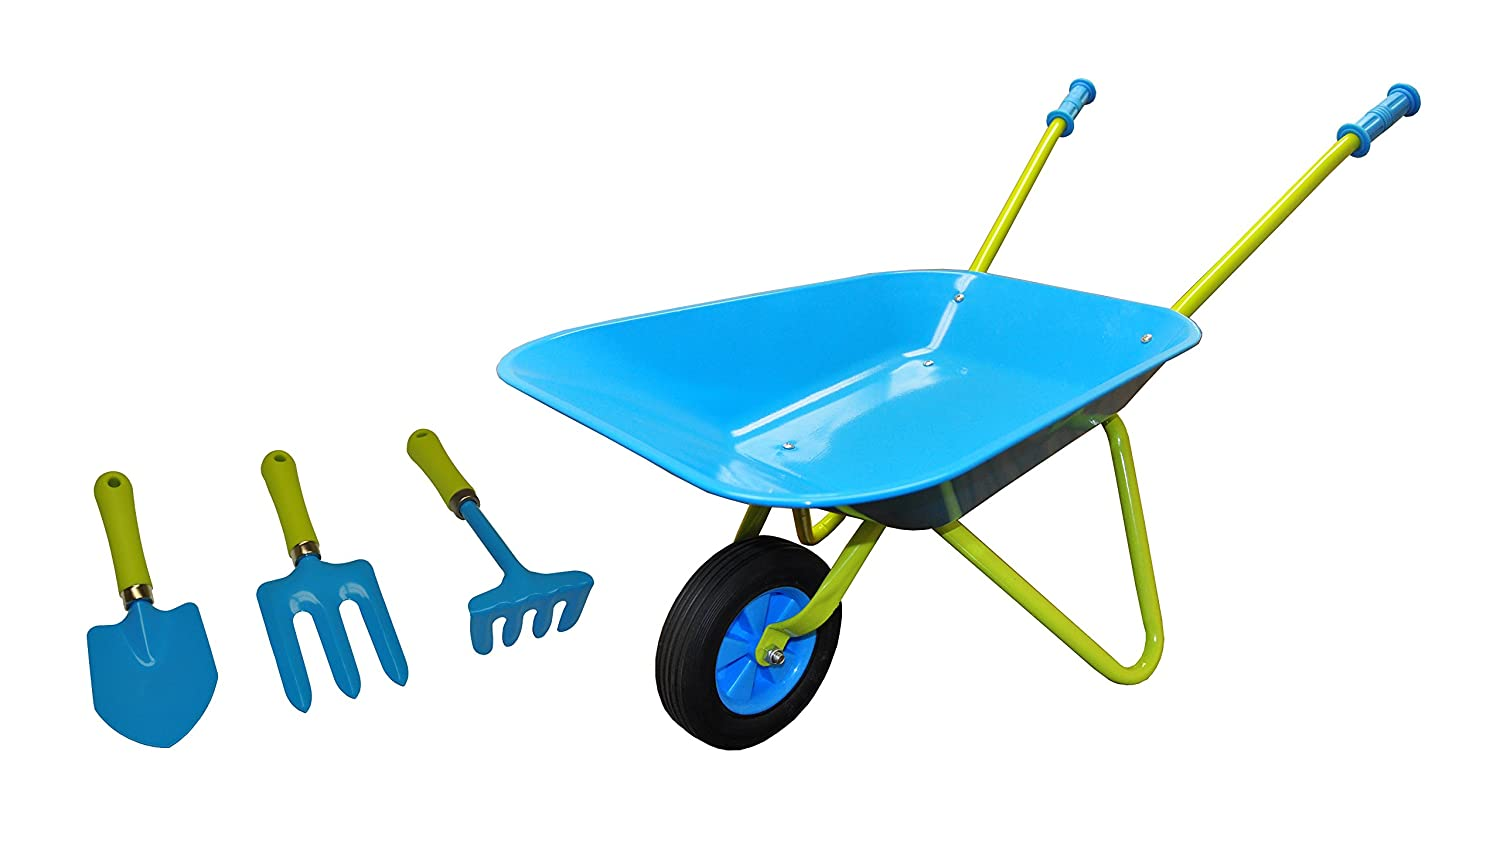 G & F 10041 JustForKids Kids Wheel Barrel and Garden Tool Set